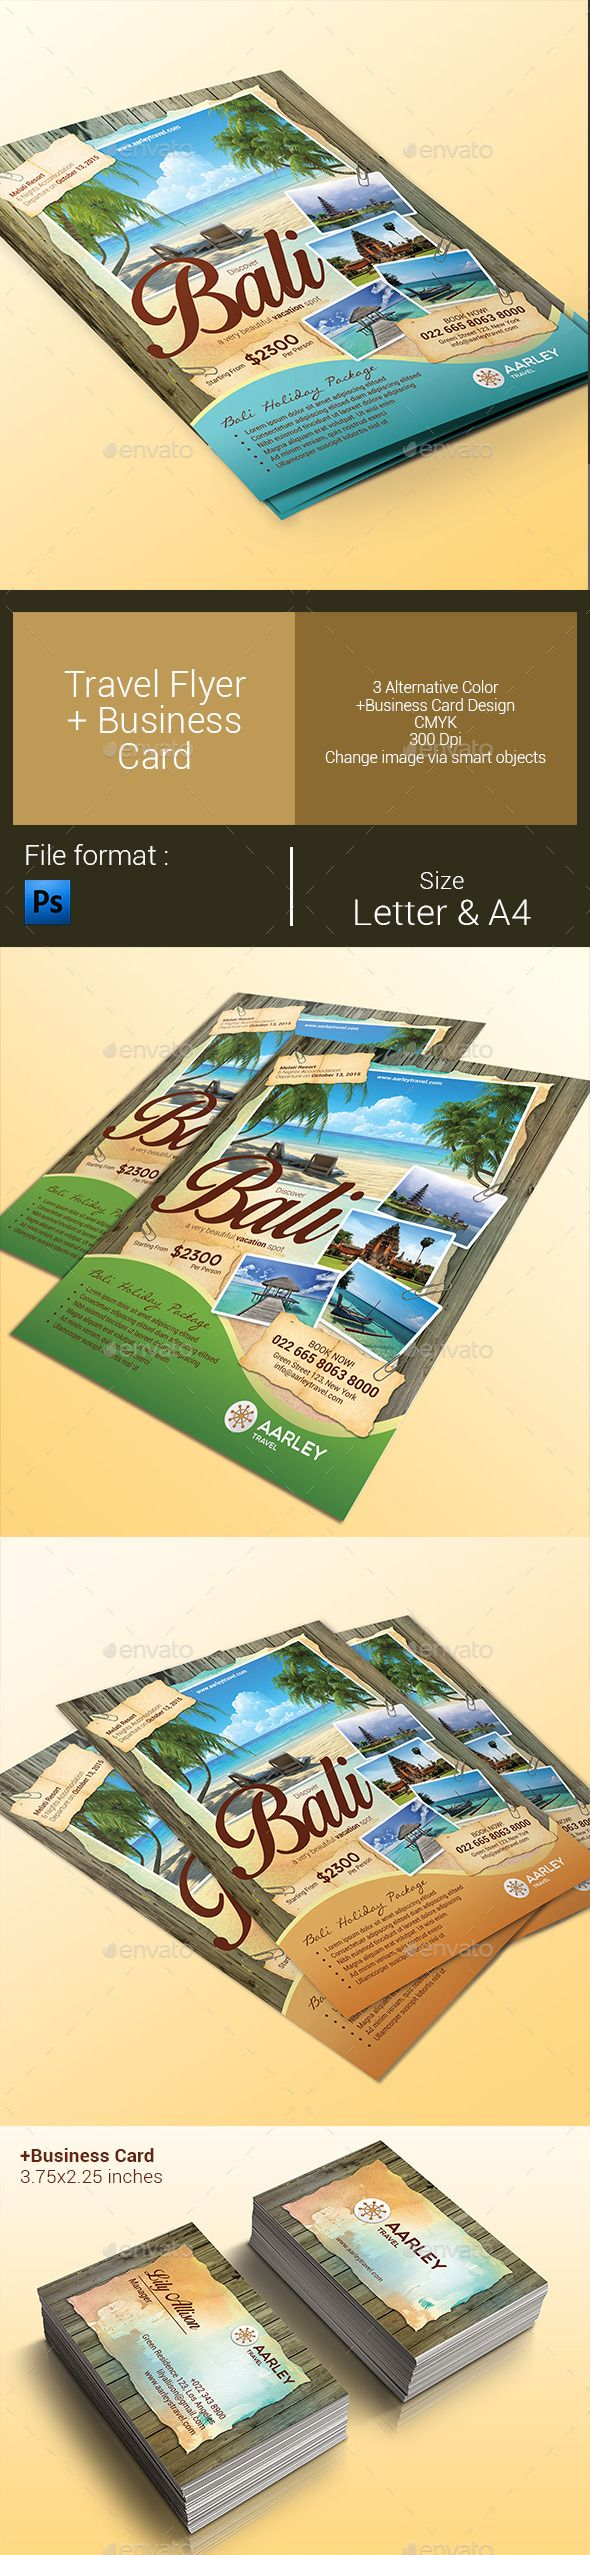 Best 47 Travel Flyer Ideas On Pinterest Graph Design Advertising